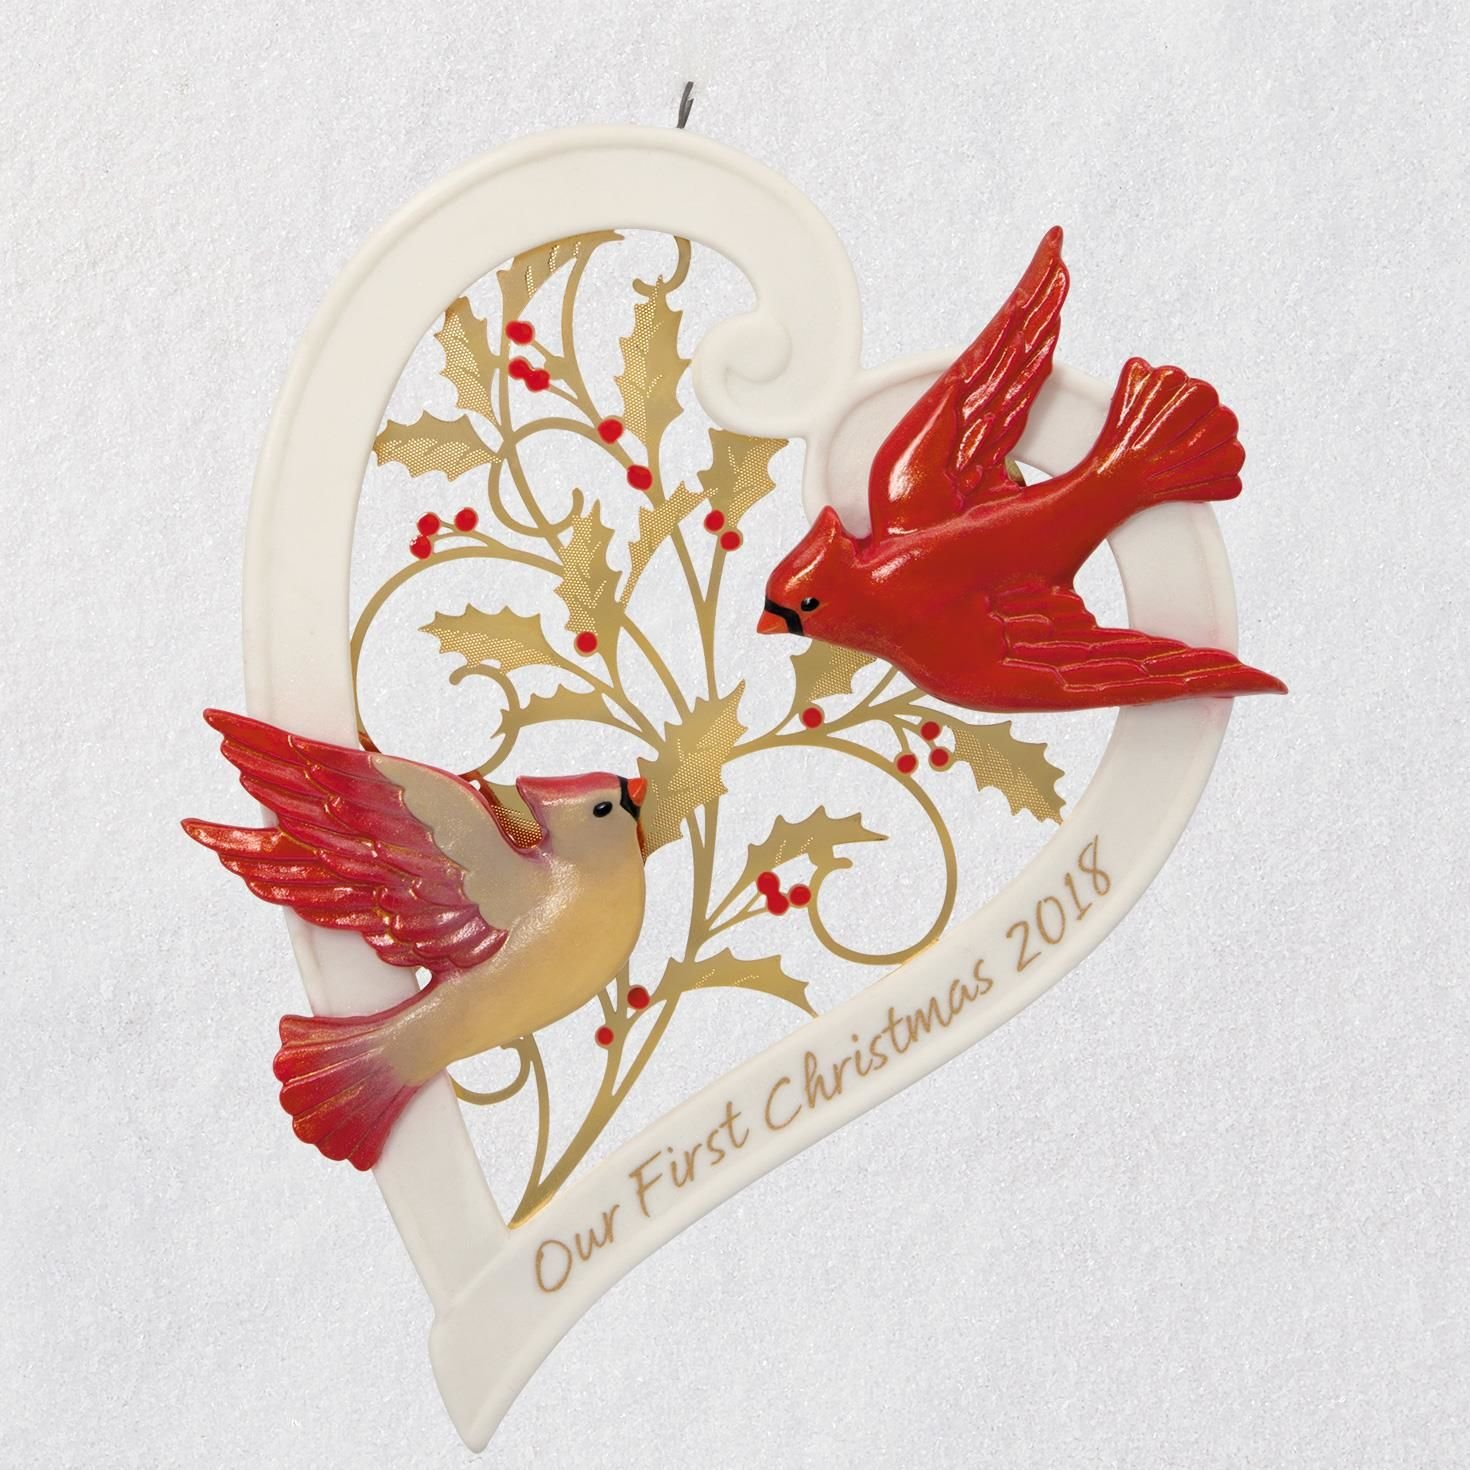 Hallmark Our First Christmas Together Heart 2018 Porcelain Ornament keepsake-ornaments Milestones,Family,Animals & Nature by Hallmark